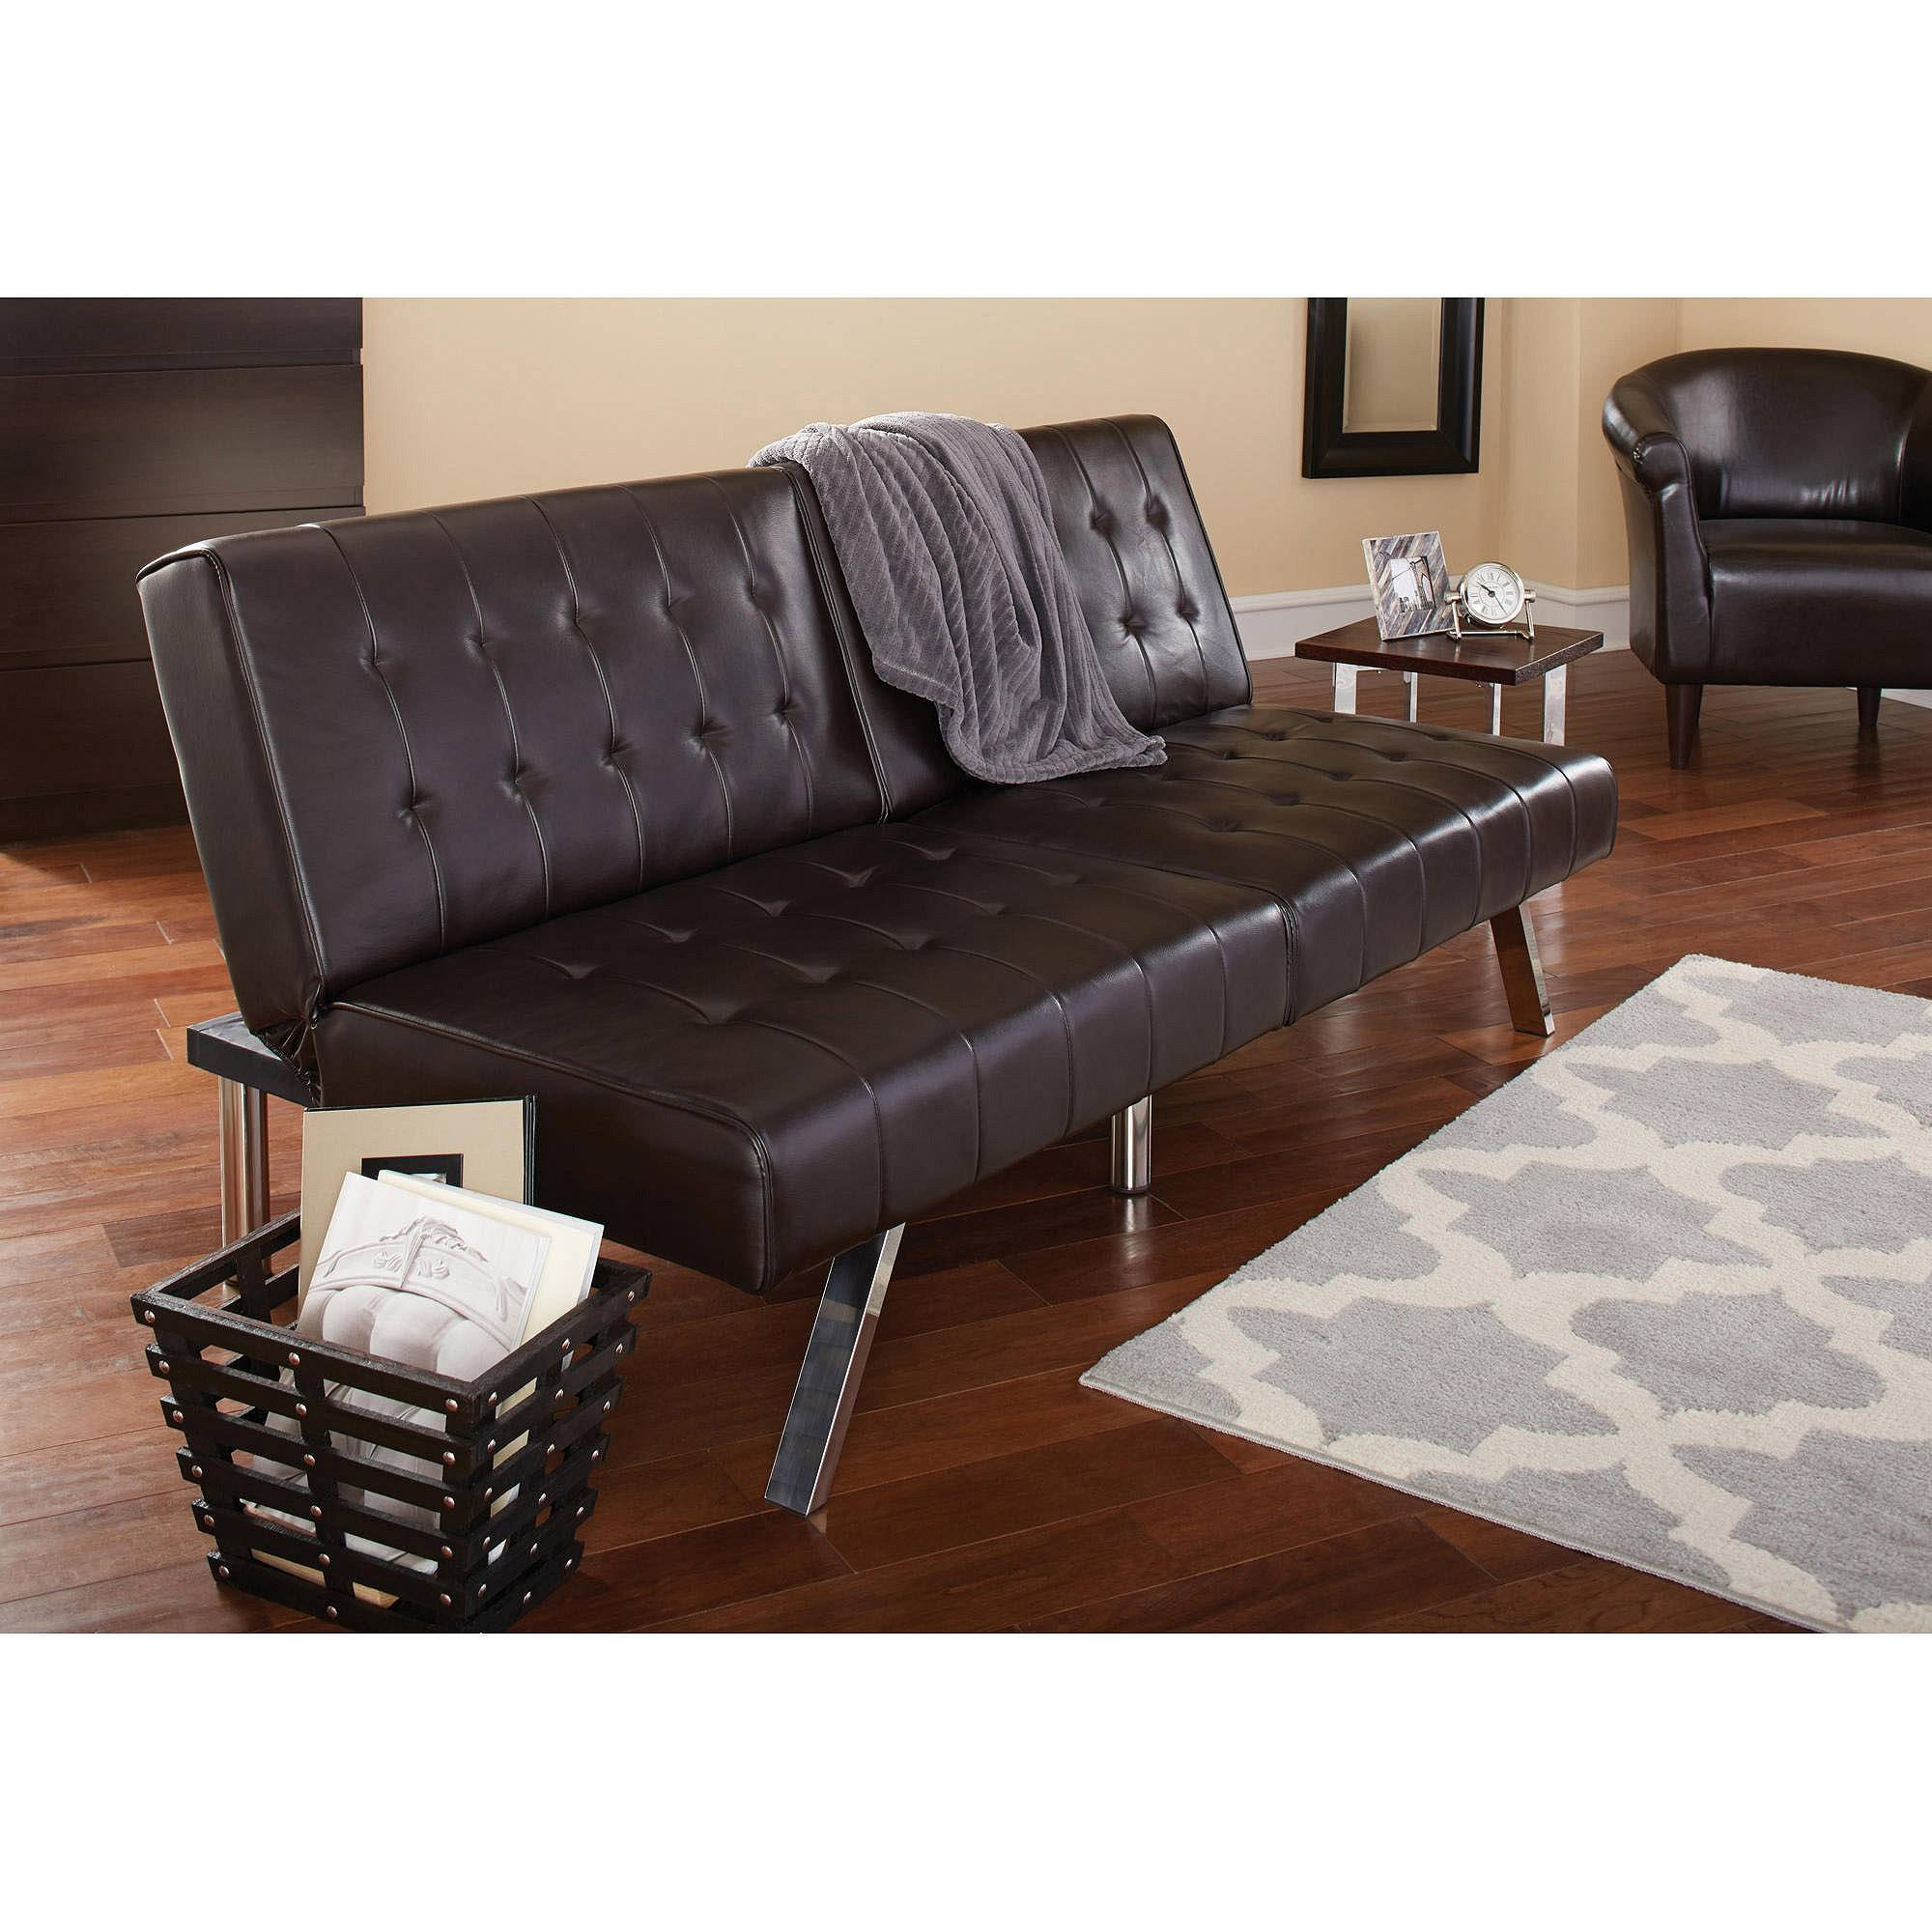 Mainstays Morgan Faux Leather Tufted Convertible Futon, Brown for Faux Leather Futon Sofas (Image 11 of 15)